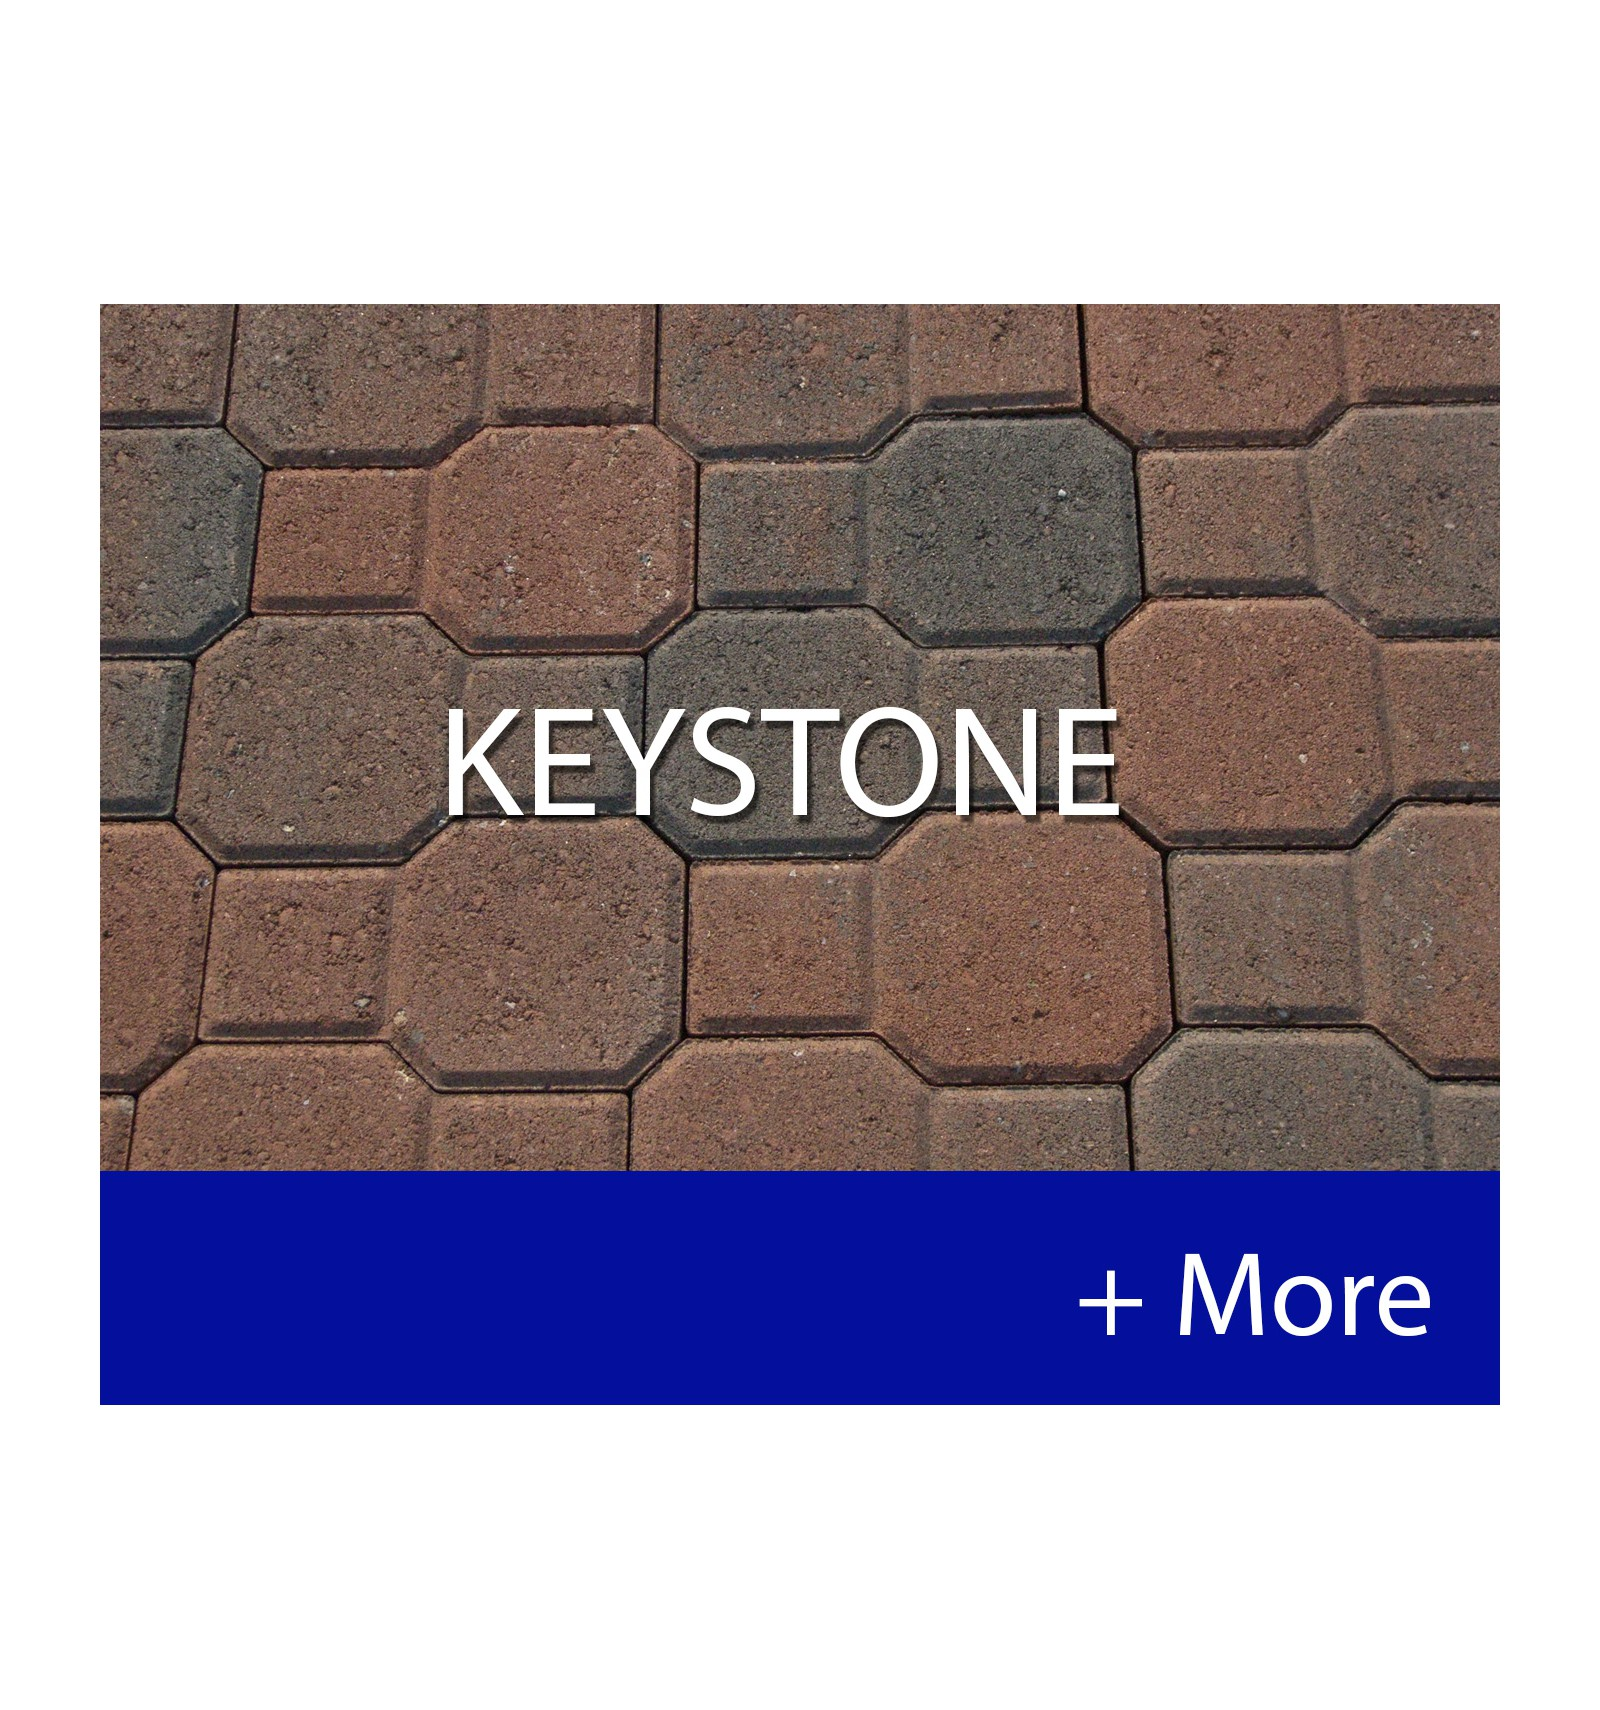 Maxi Cement Bricks: Keystone